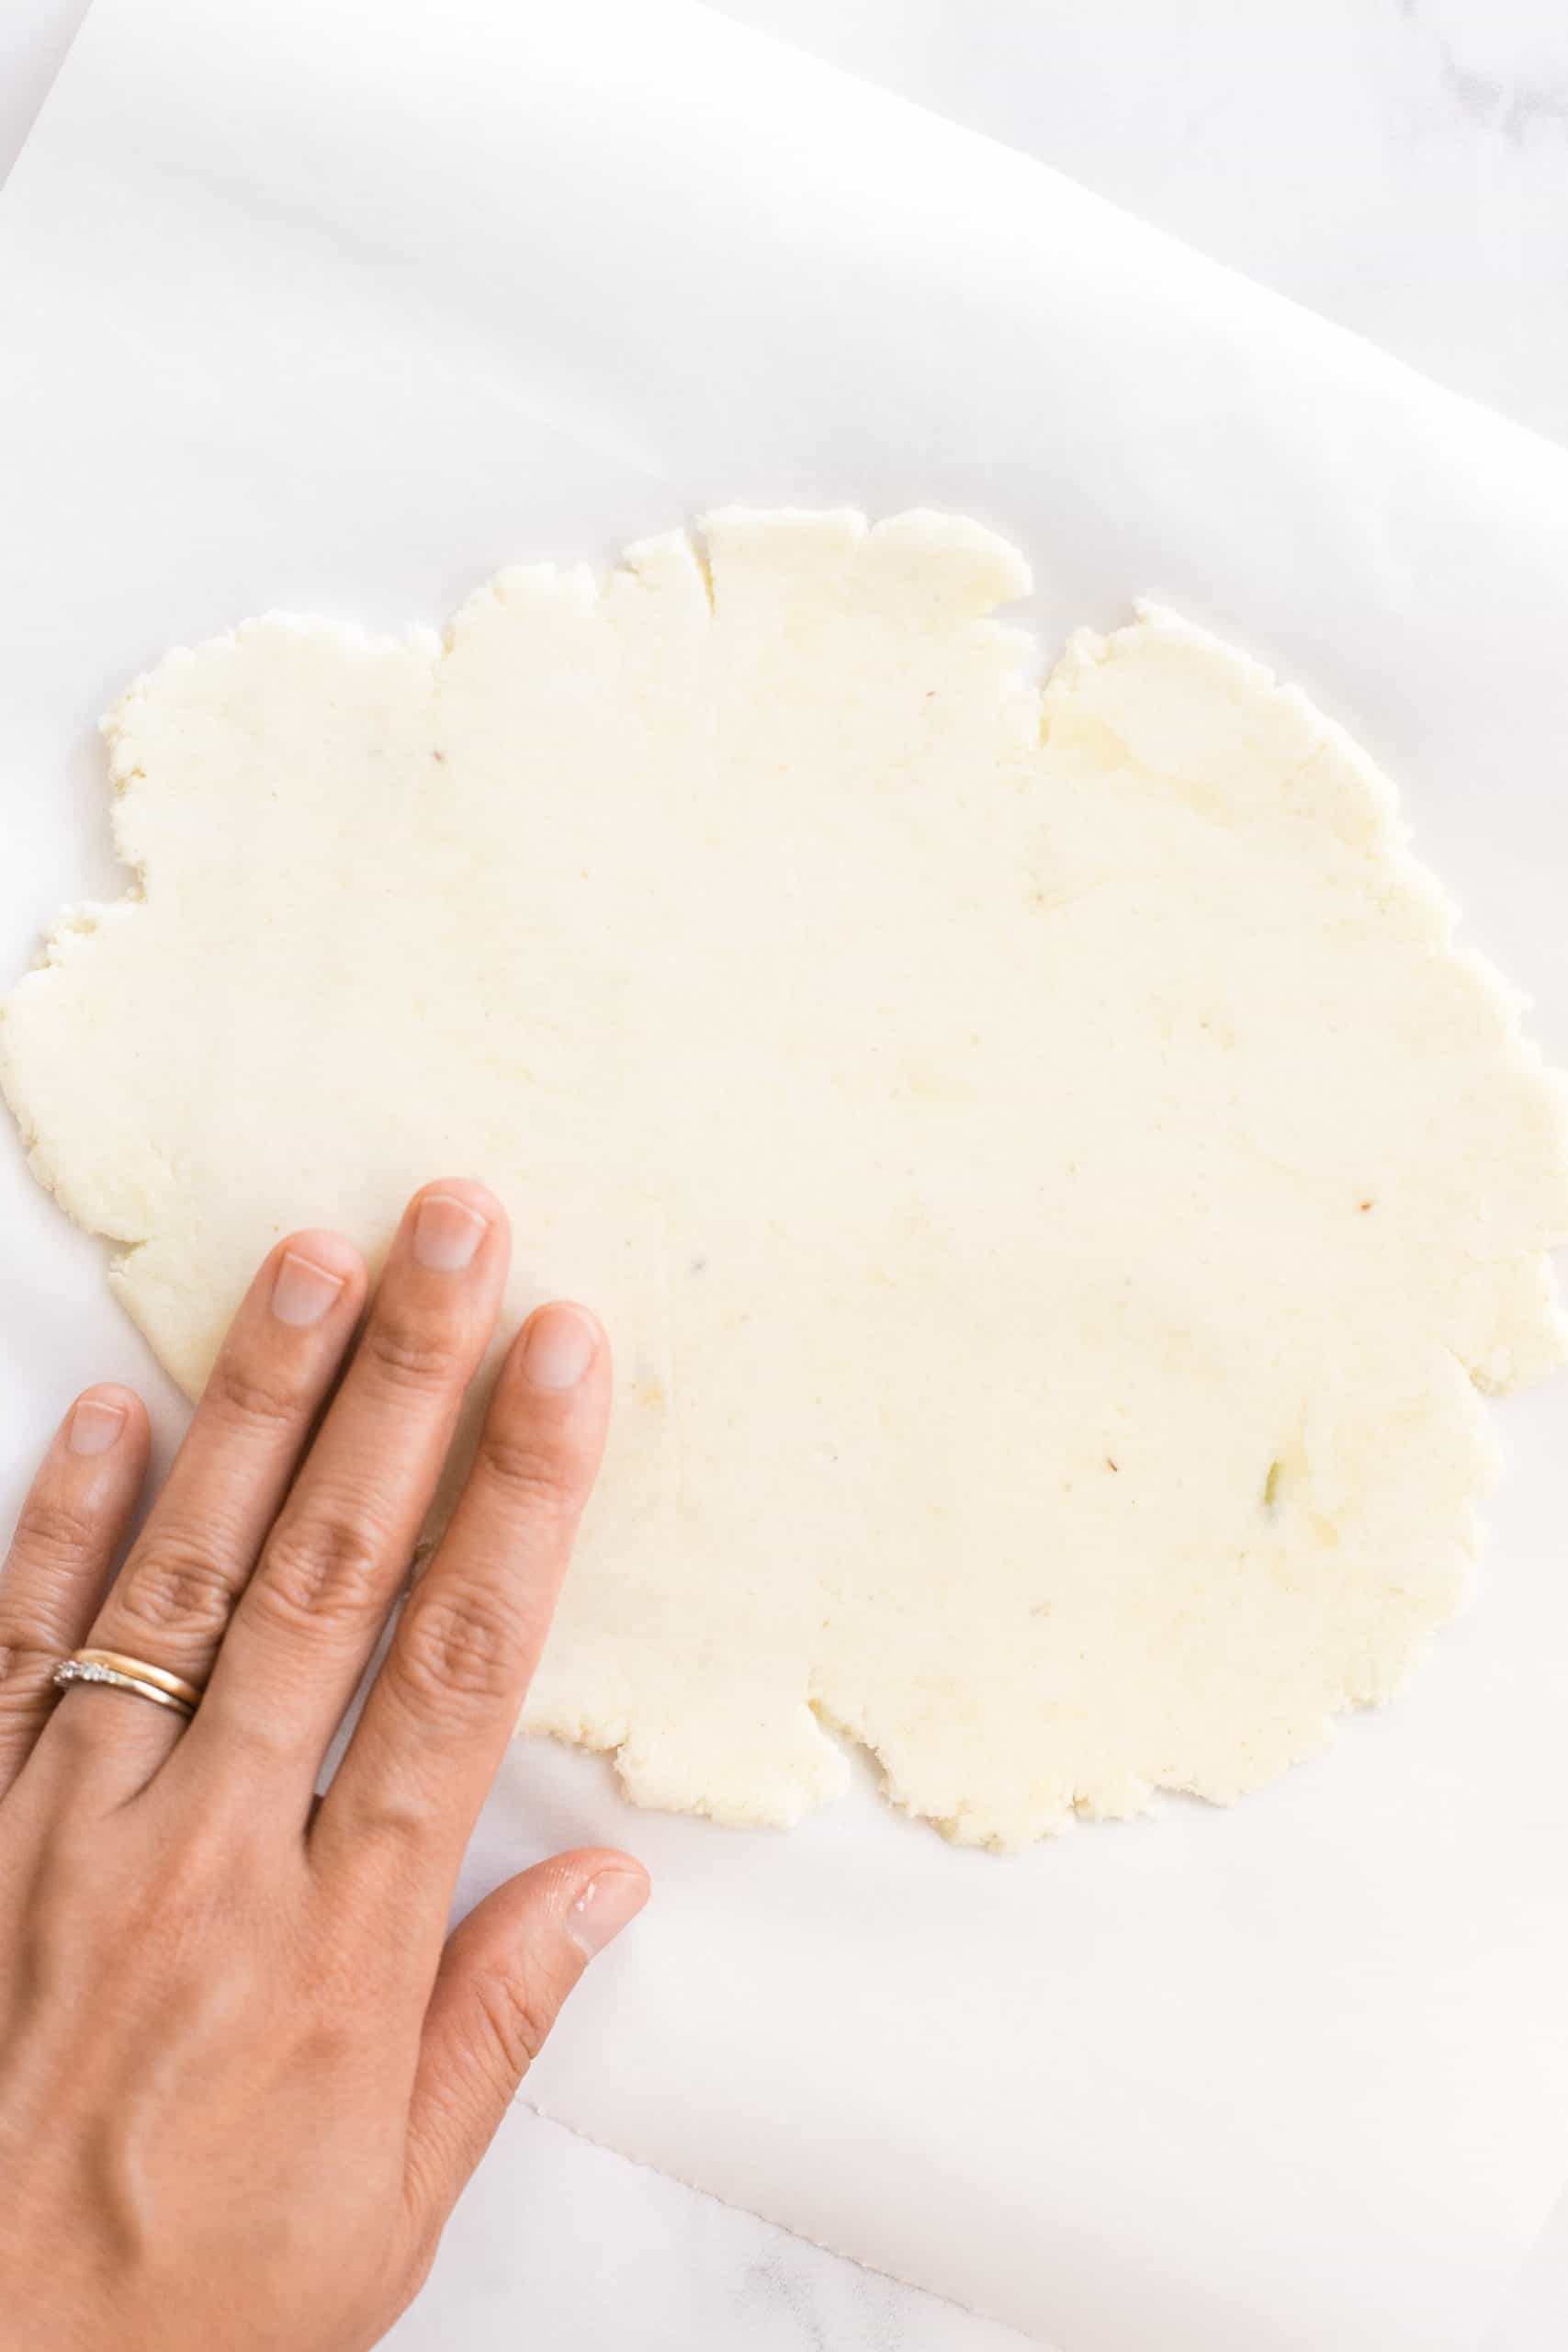 Hand on flattened dough on parchment paper.